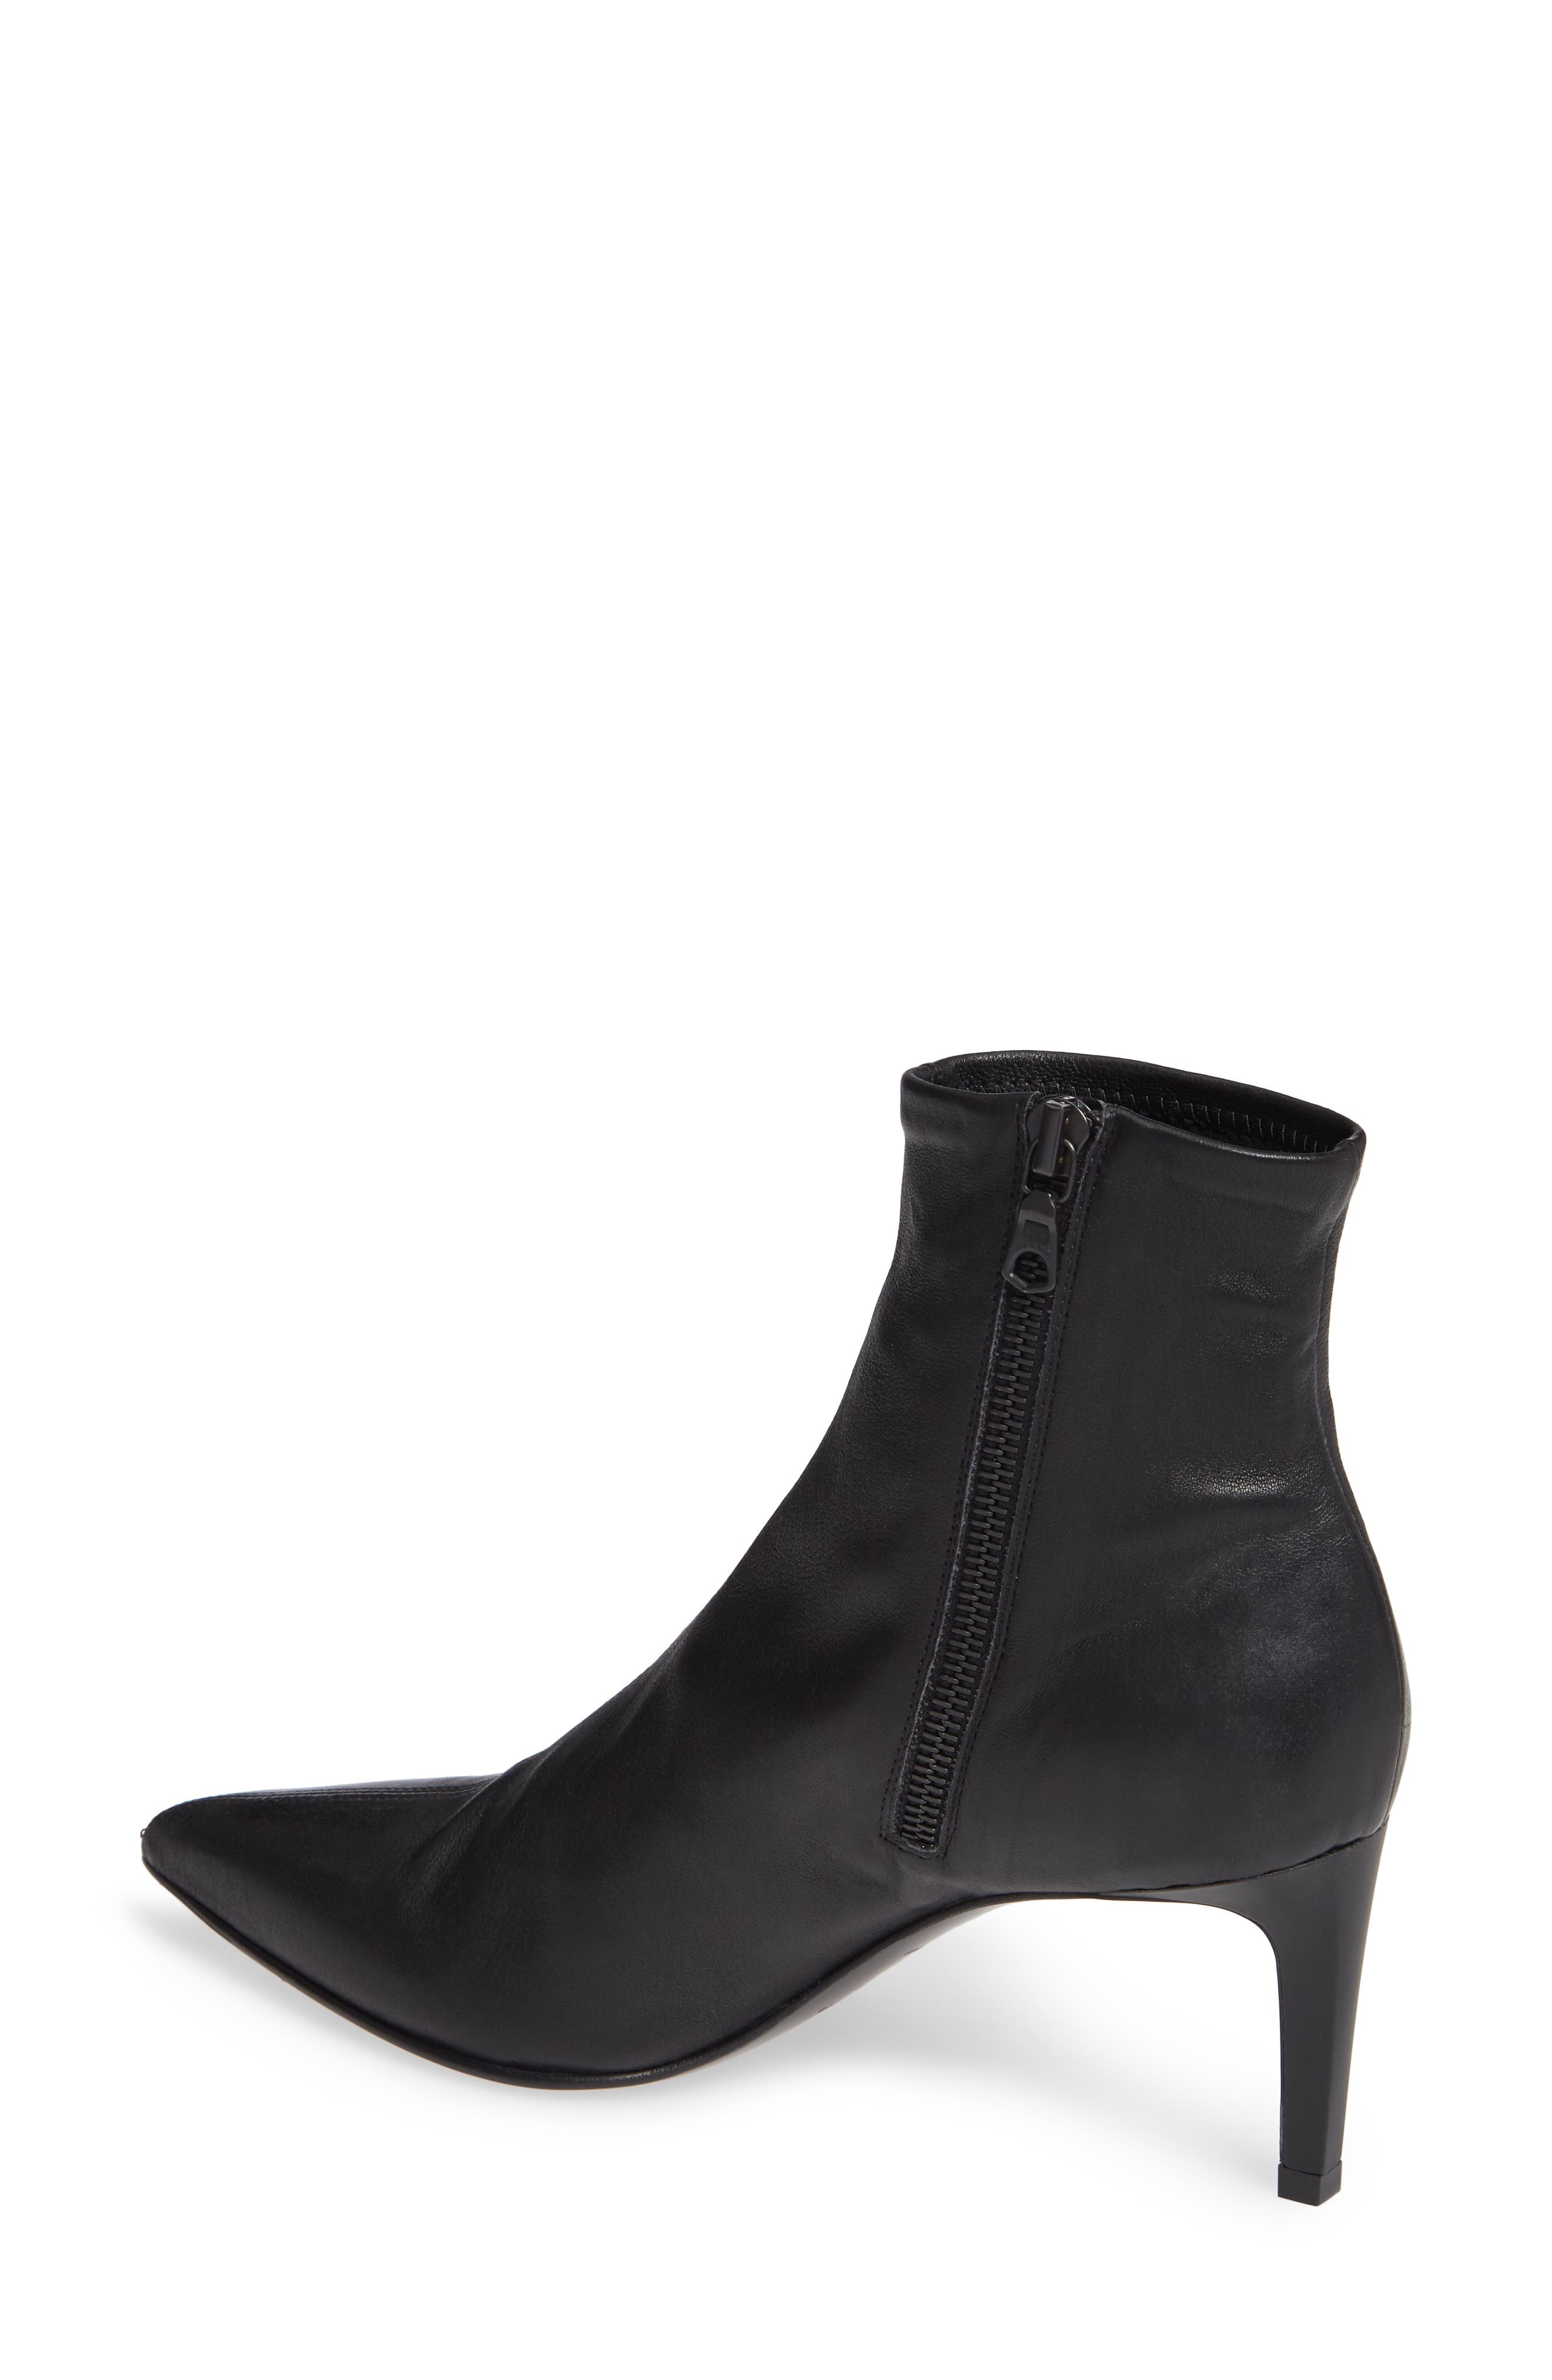 Beha Stretch Bootie,                             Alternate thumbnail 2, color,                             001